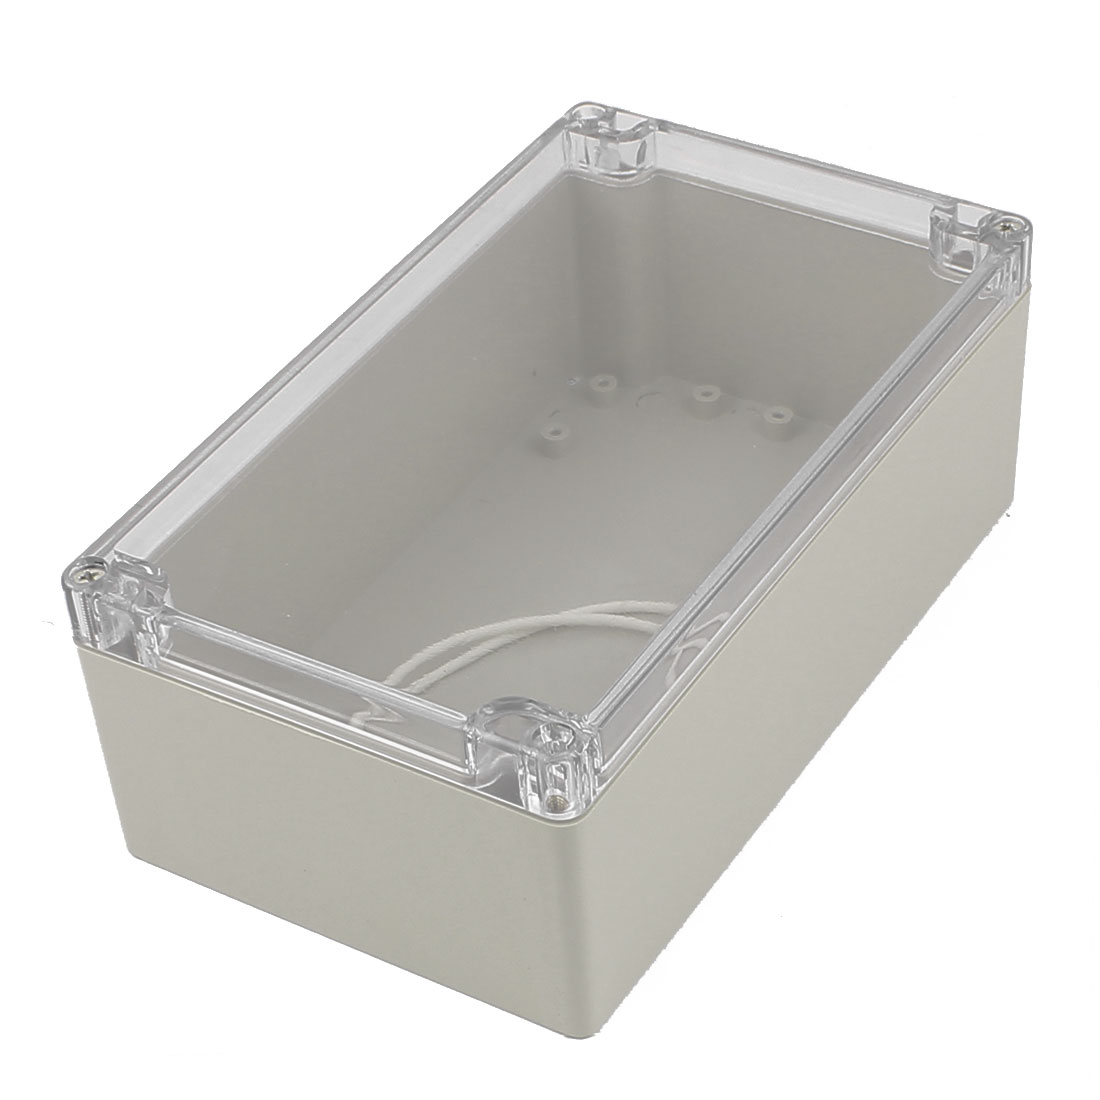 200mm x 120mm x 75mm Clear Cover Dustproof IP65 Enclosure Case DIY Junction Box